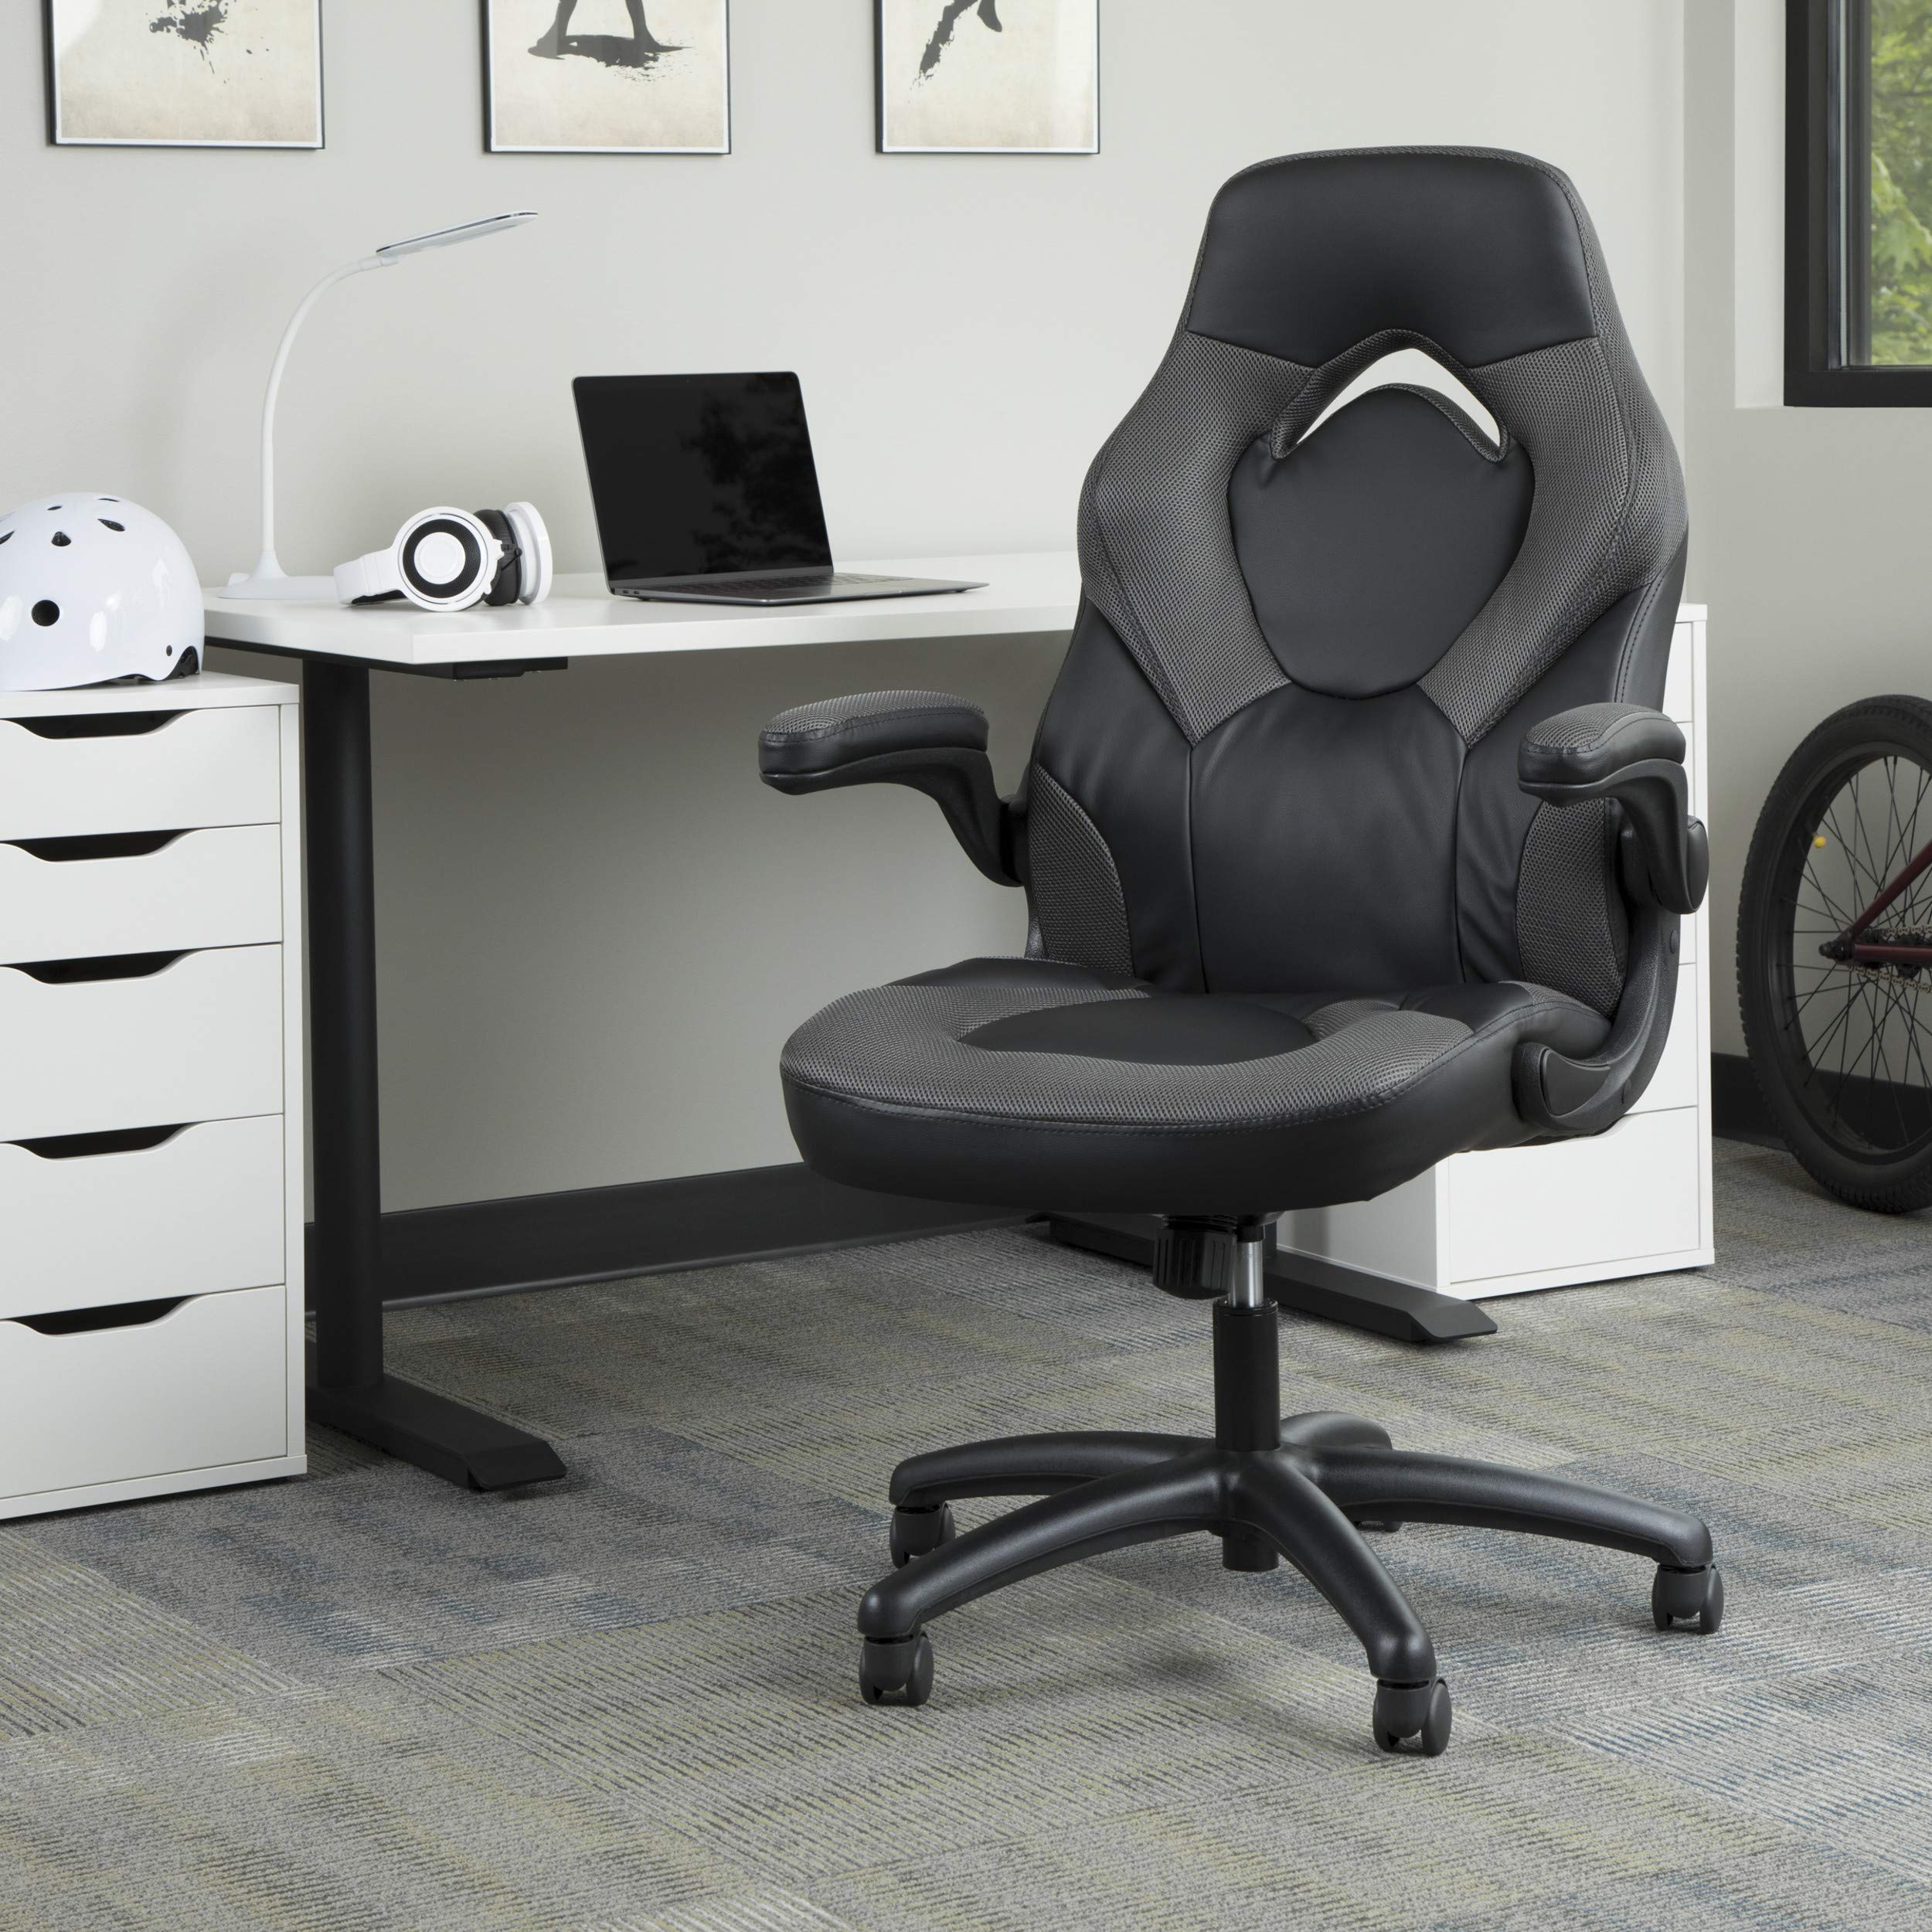 Essentials Racing Style Leather Gaming Chair Ergonomic Swivel Computer Office Or Gaming Chair Gray Ess 3085 Gry Amazon Sg Home